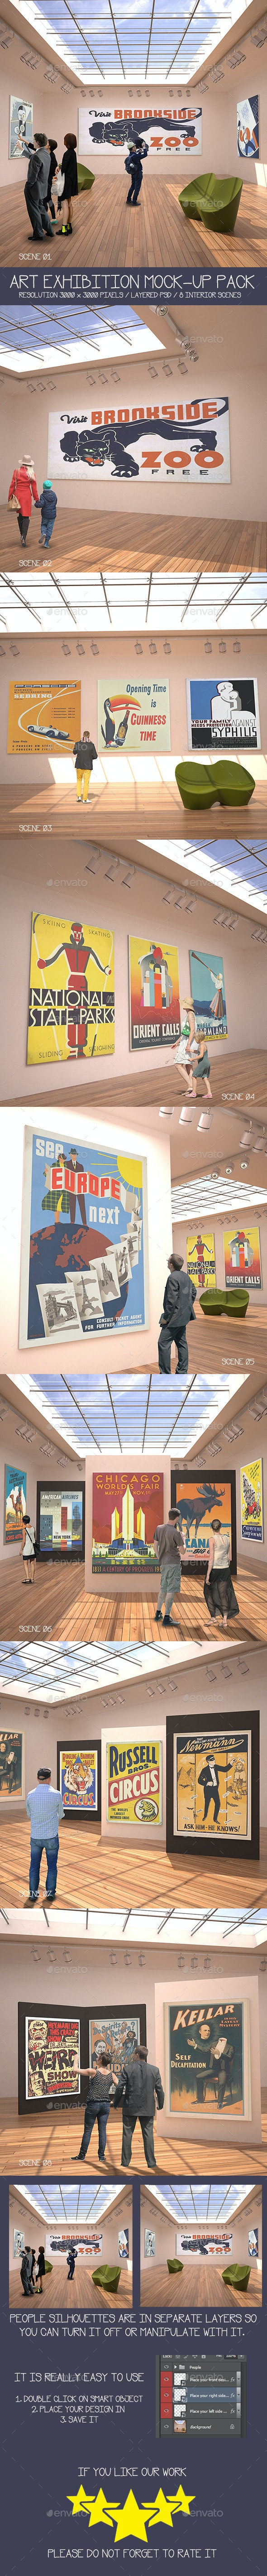 Art Exhibition Mock-Up Pack - Posters Print